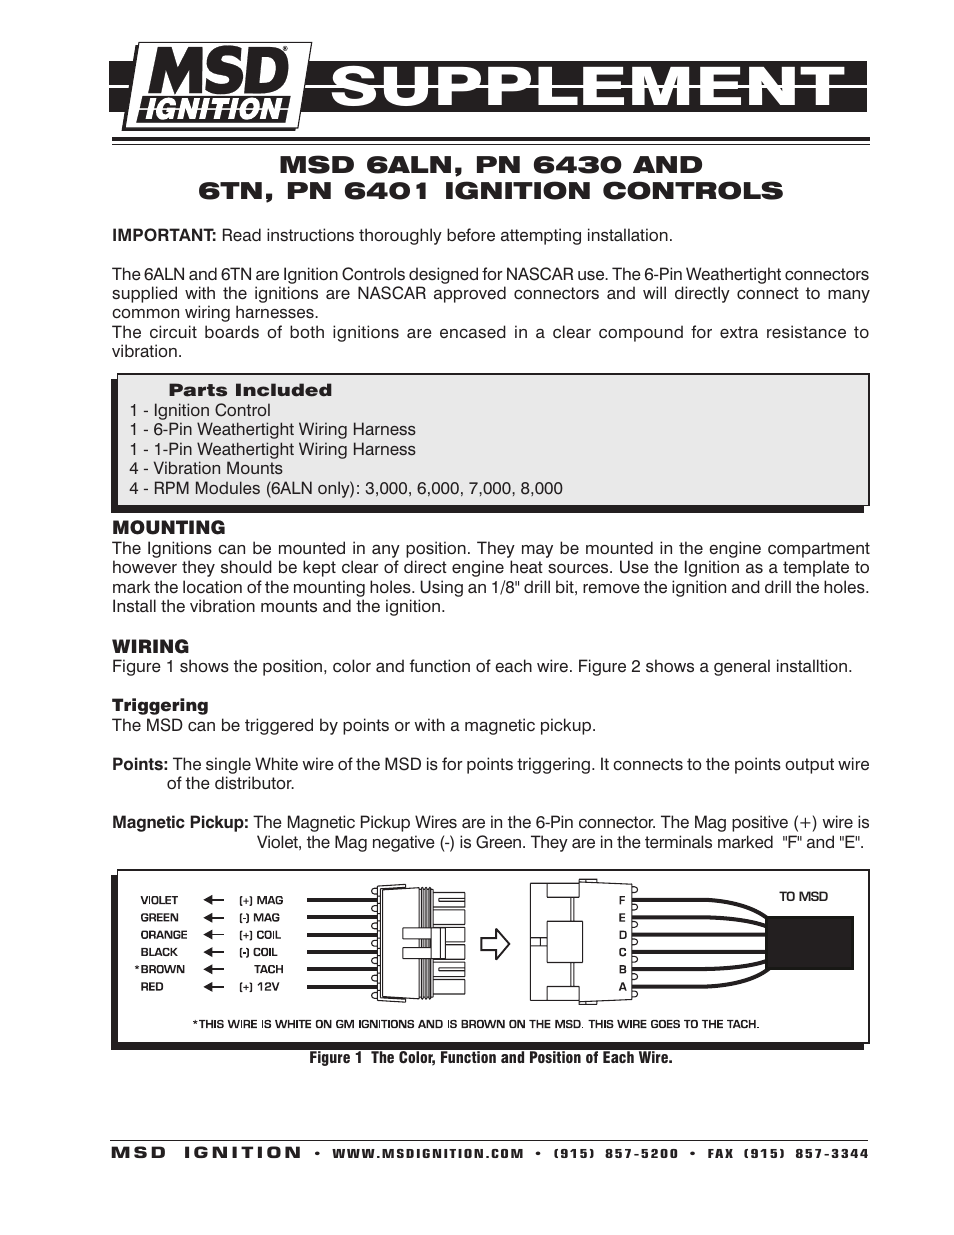 msd 6430 6aln ignition control supplement page1 tg66m3170c00 wiring diagram,m \u2022 indy500 co  at creativeand.co